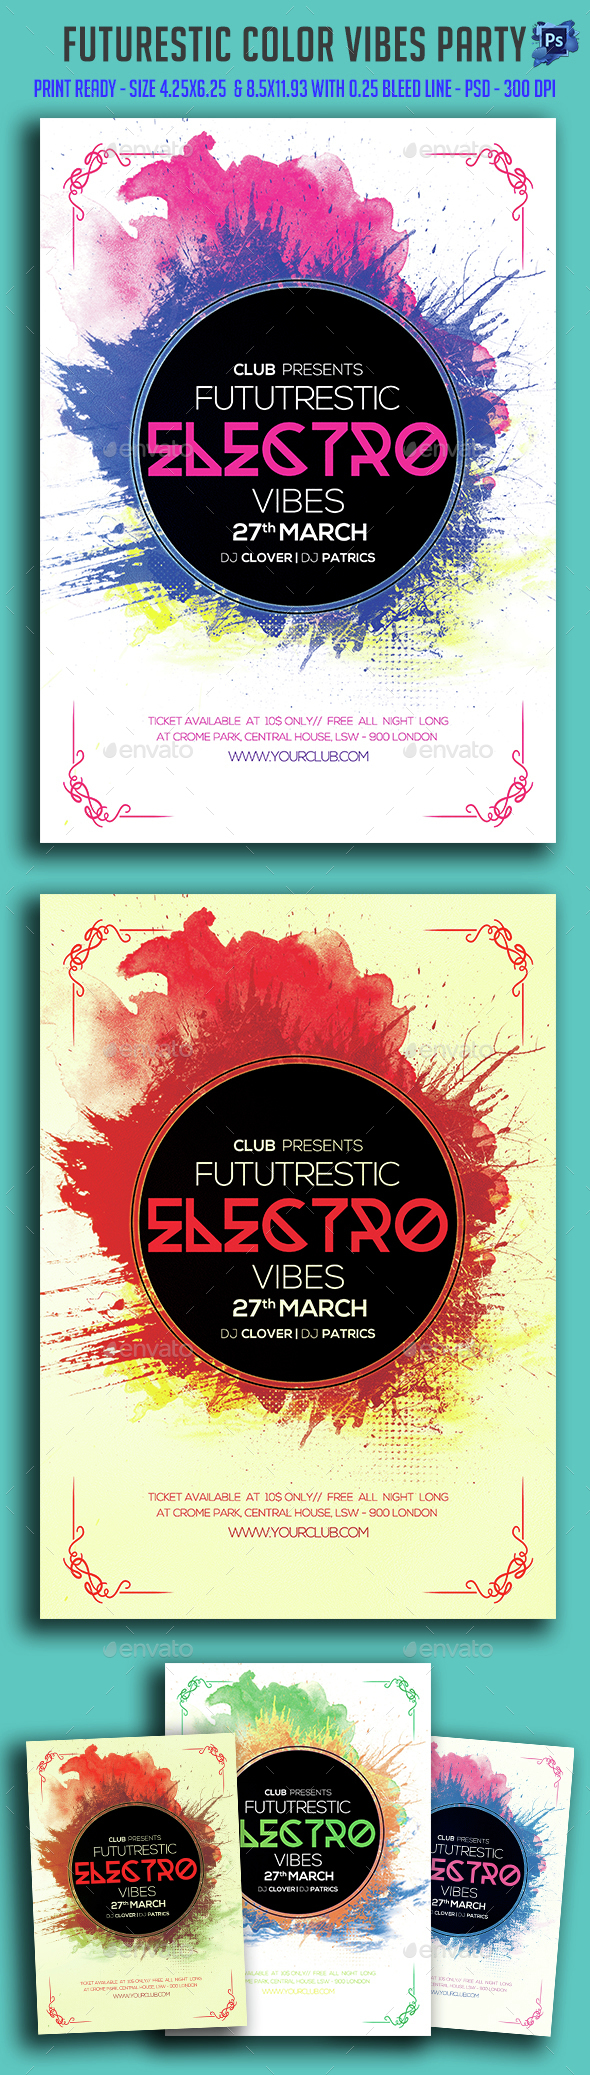 Futurestic Color Vibes Party Flyer - Clubs & Parties Events